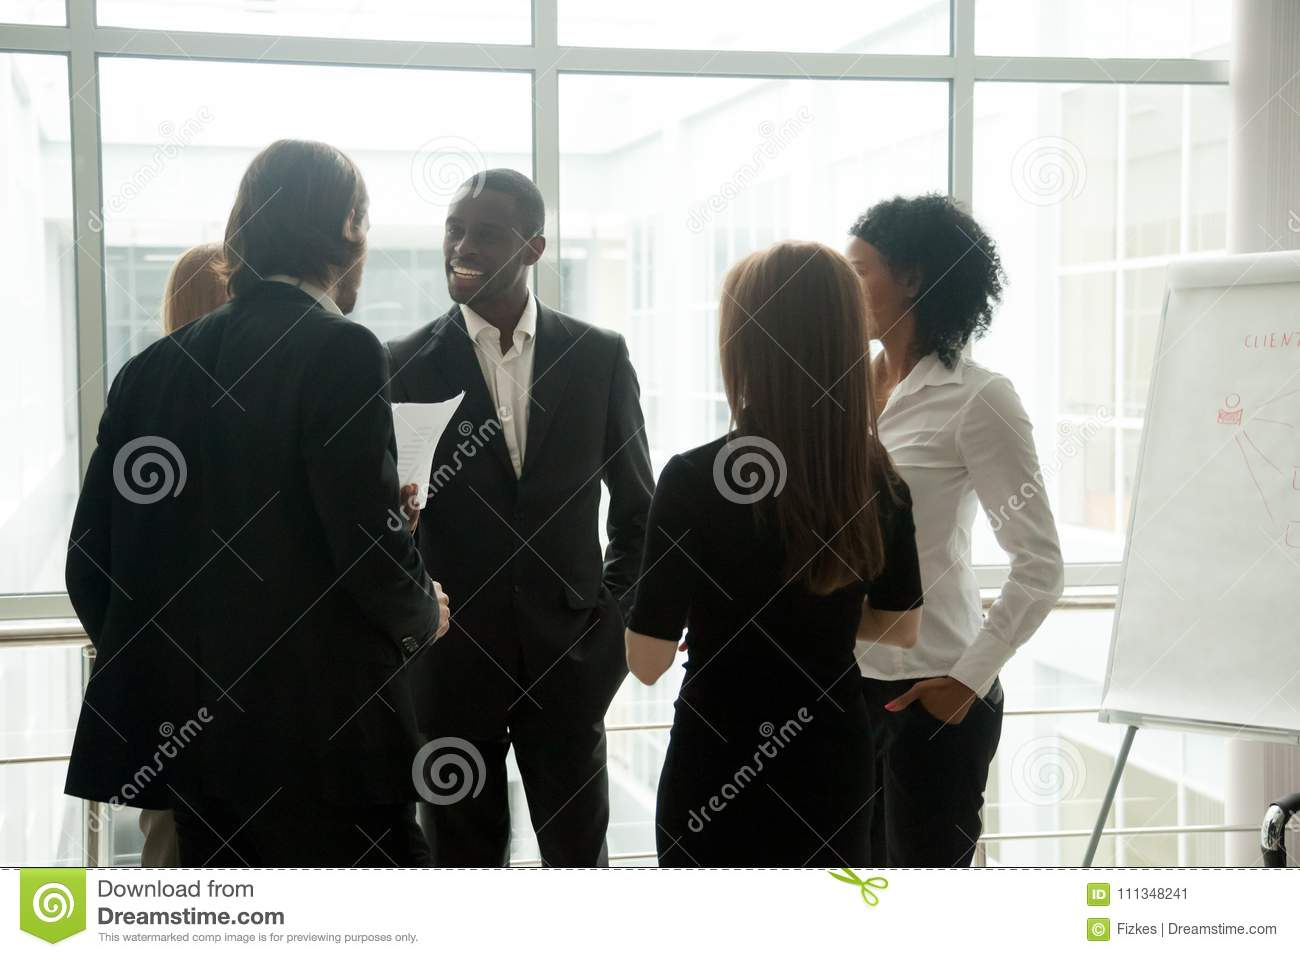 Diverse smiling business people having conversation standing tog